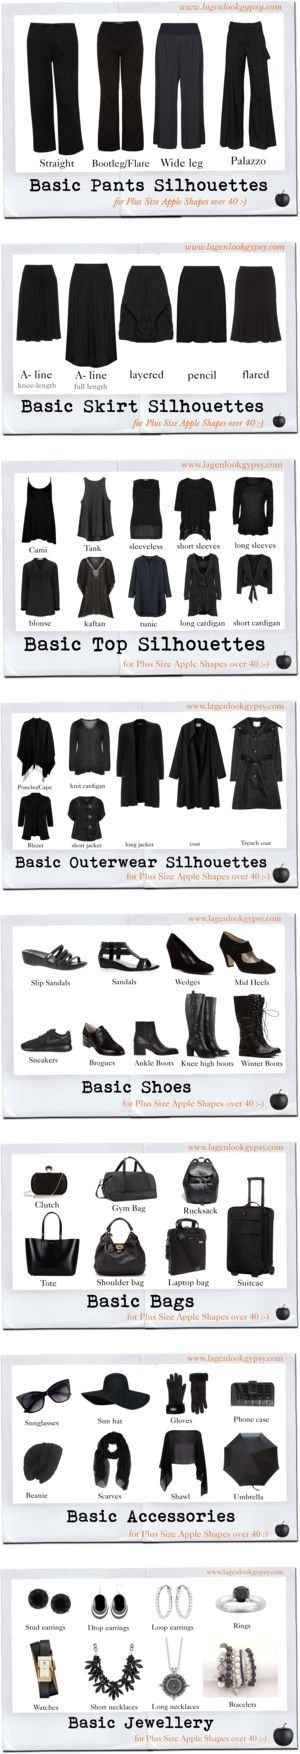 Plus Size over 40 Basic Capsule Wardrobe by mindeja on Polyvore featuring A.F. Vandevorst, CB2, M&Co, La Stampa, Isolde Roth, Doris Streich, Open End, Champagne, Zhenzi and WearAll